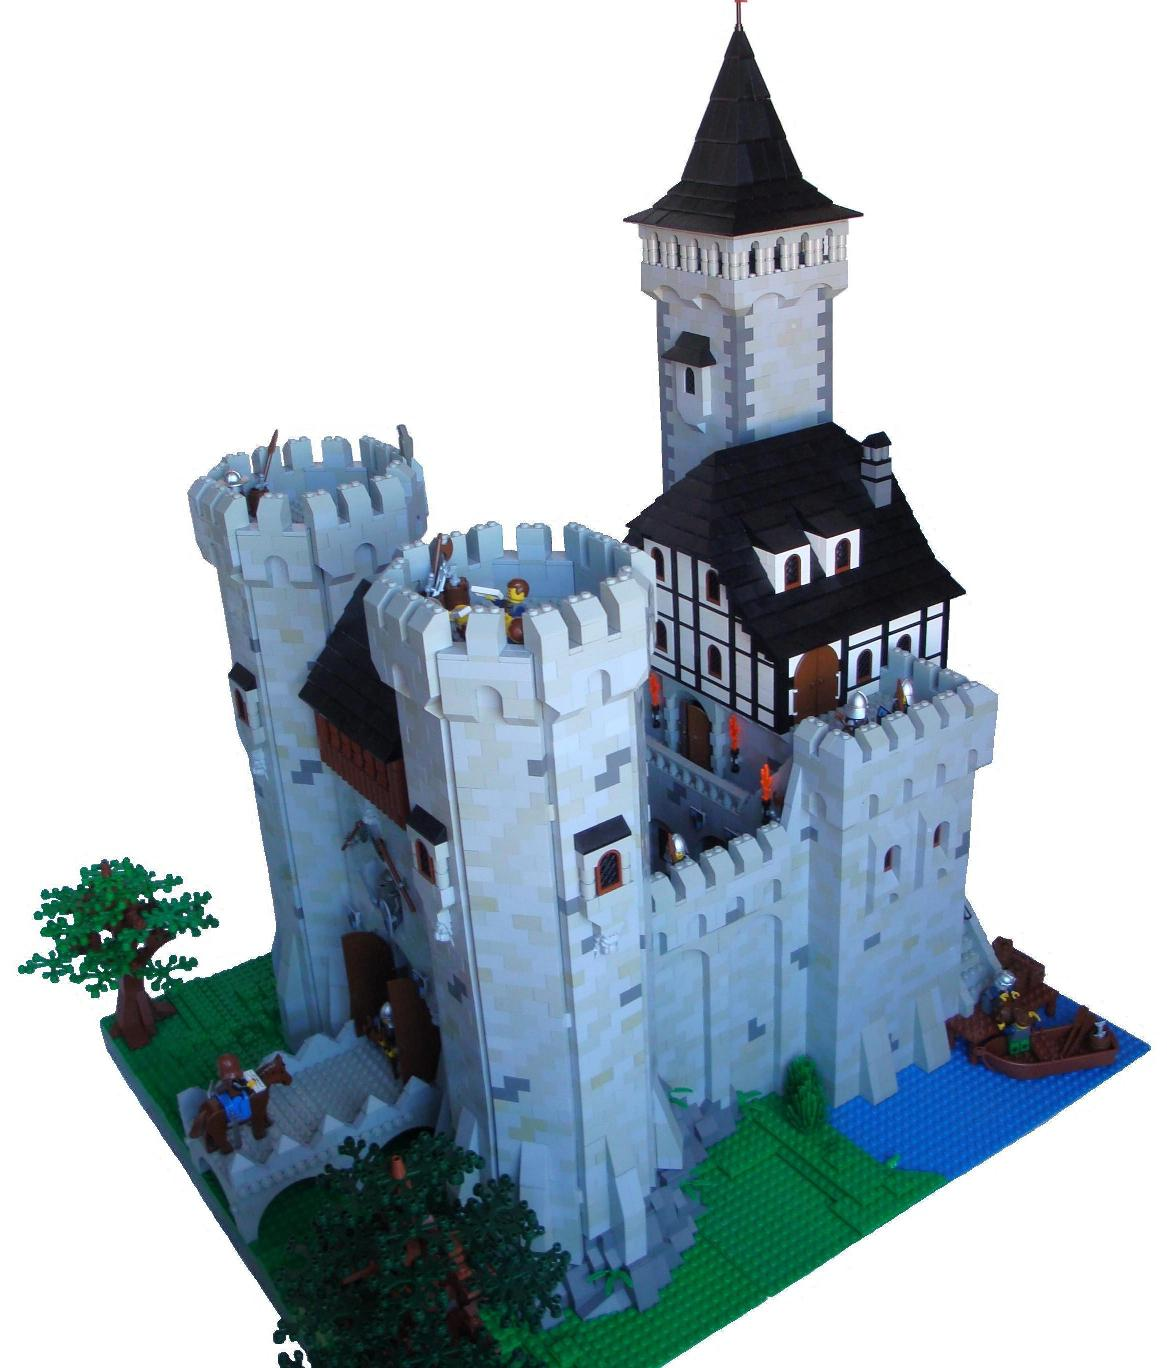 02wolf_castle-pohled_sz-12.jpg